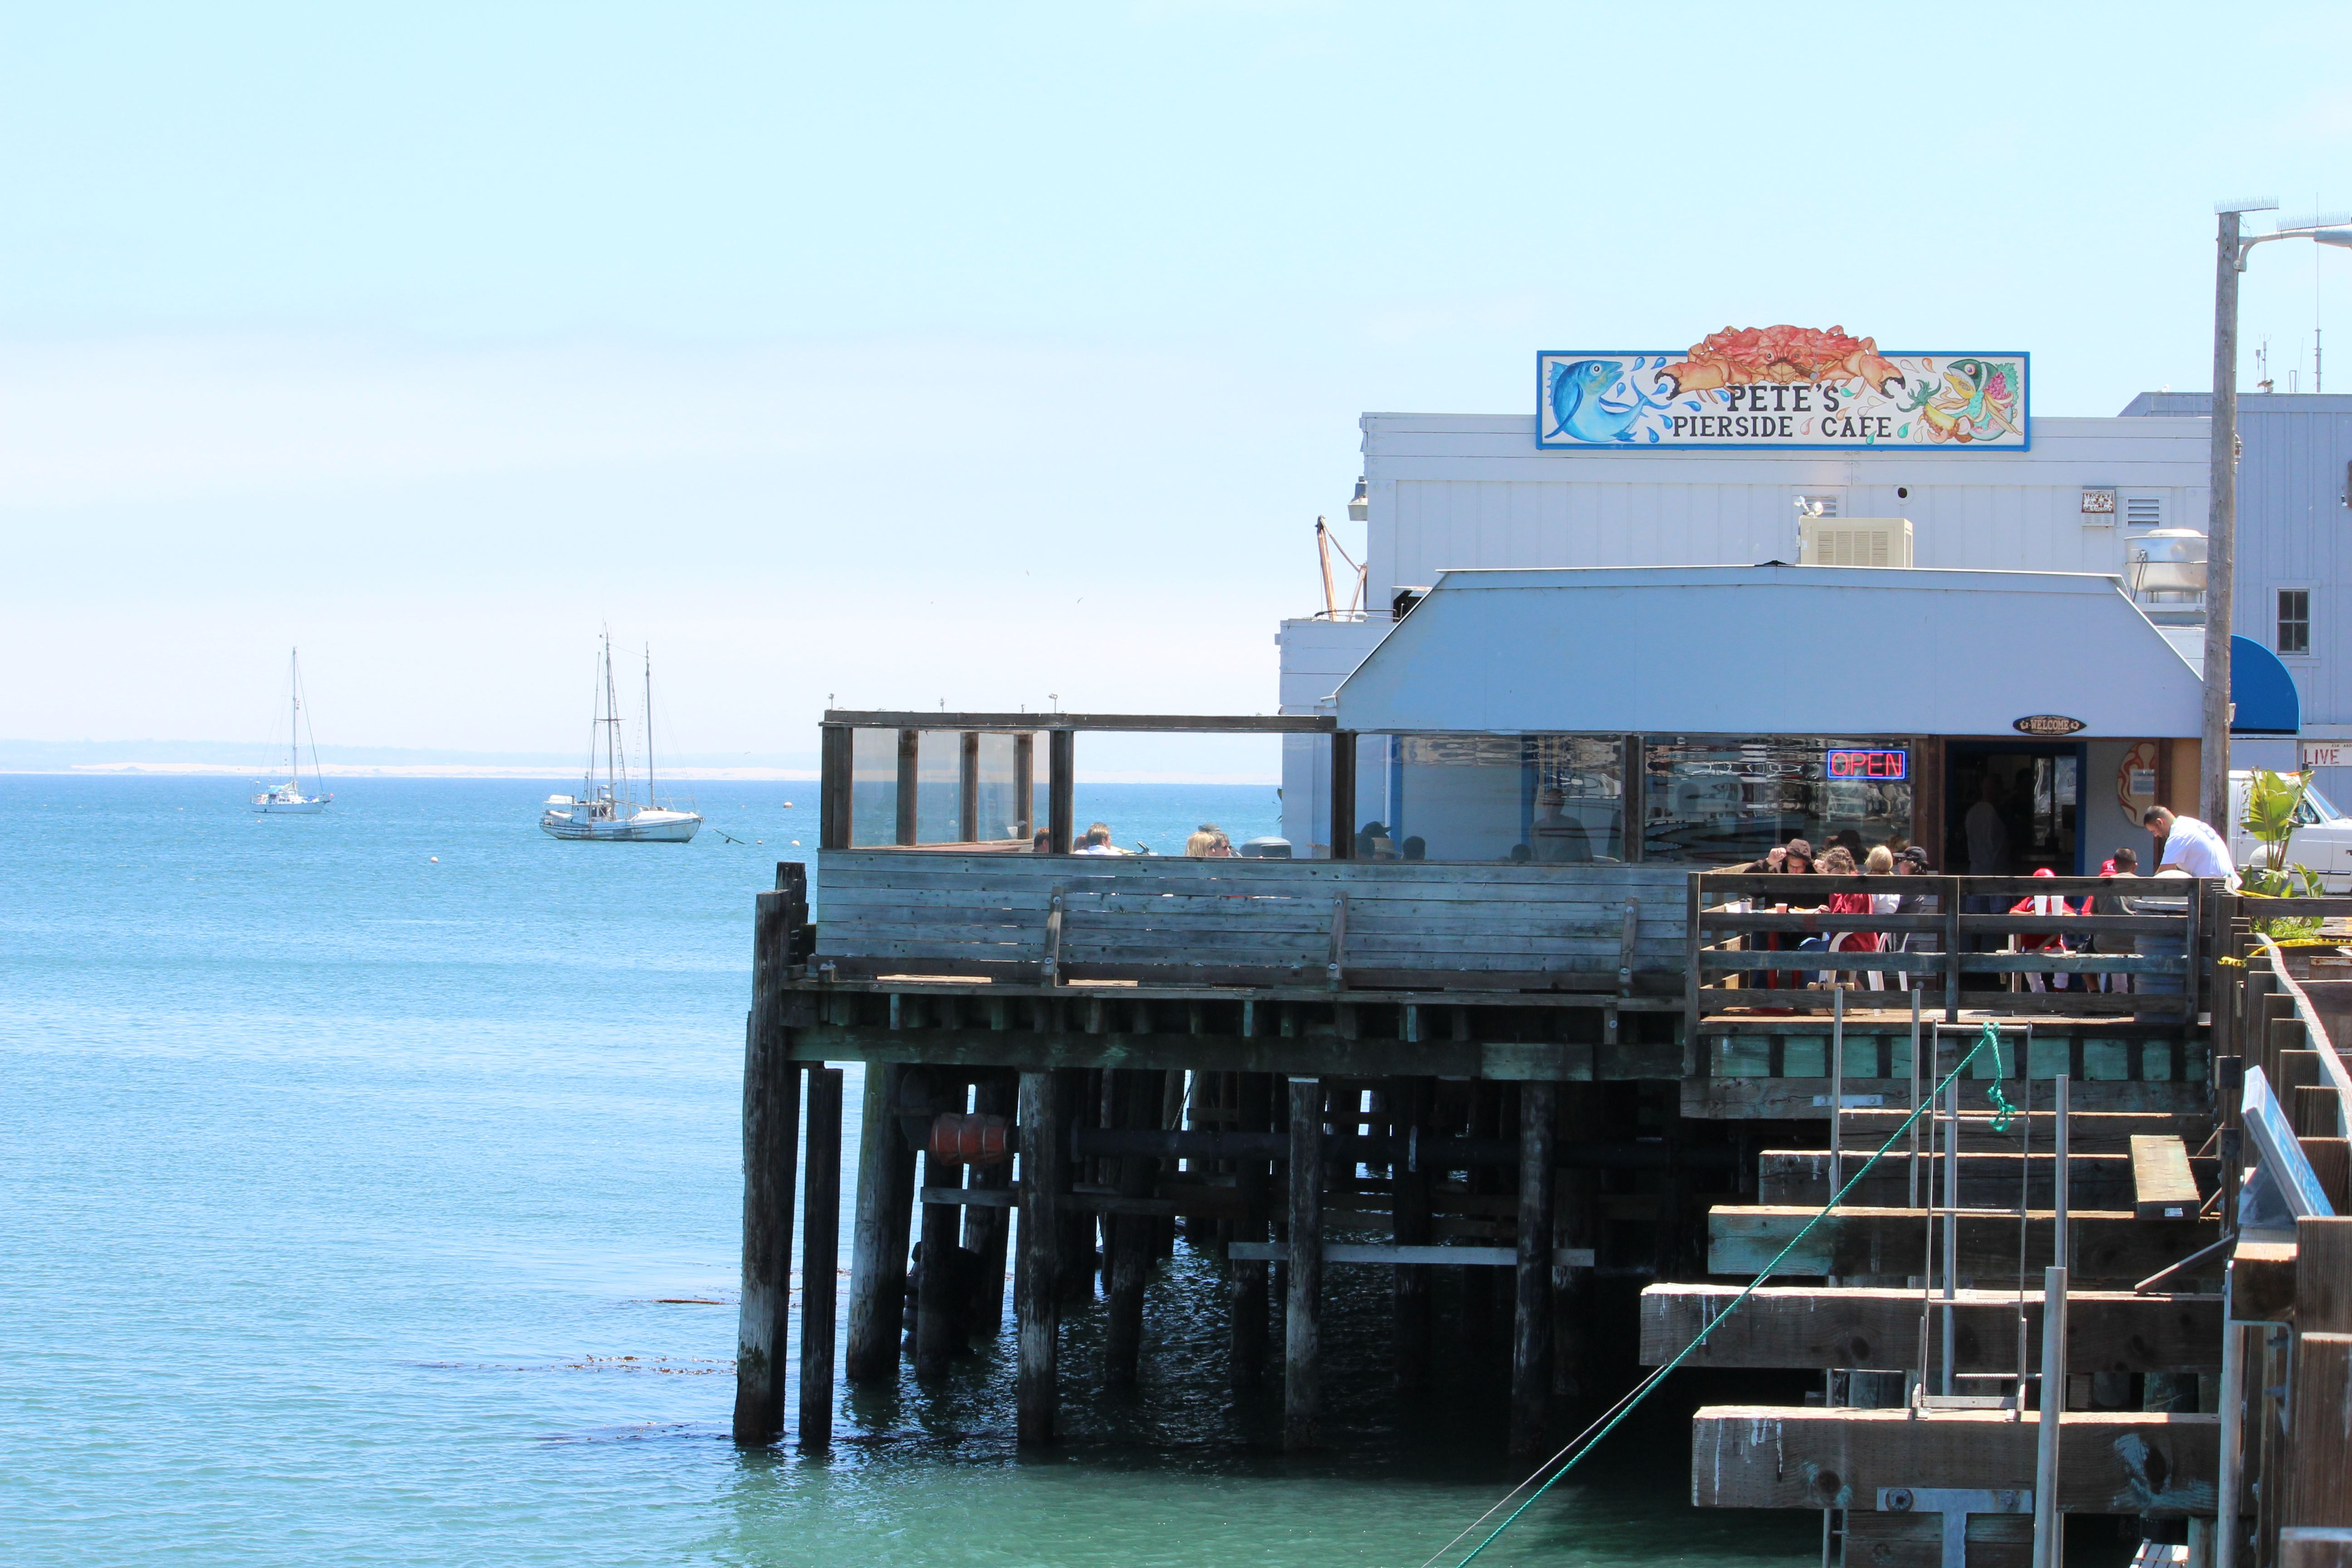 Pete's Pierside Cafe on the Harford Pier; beware of the